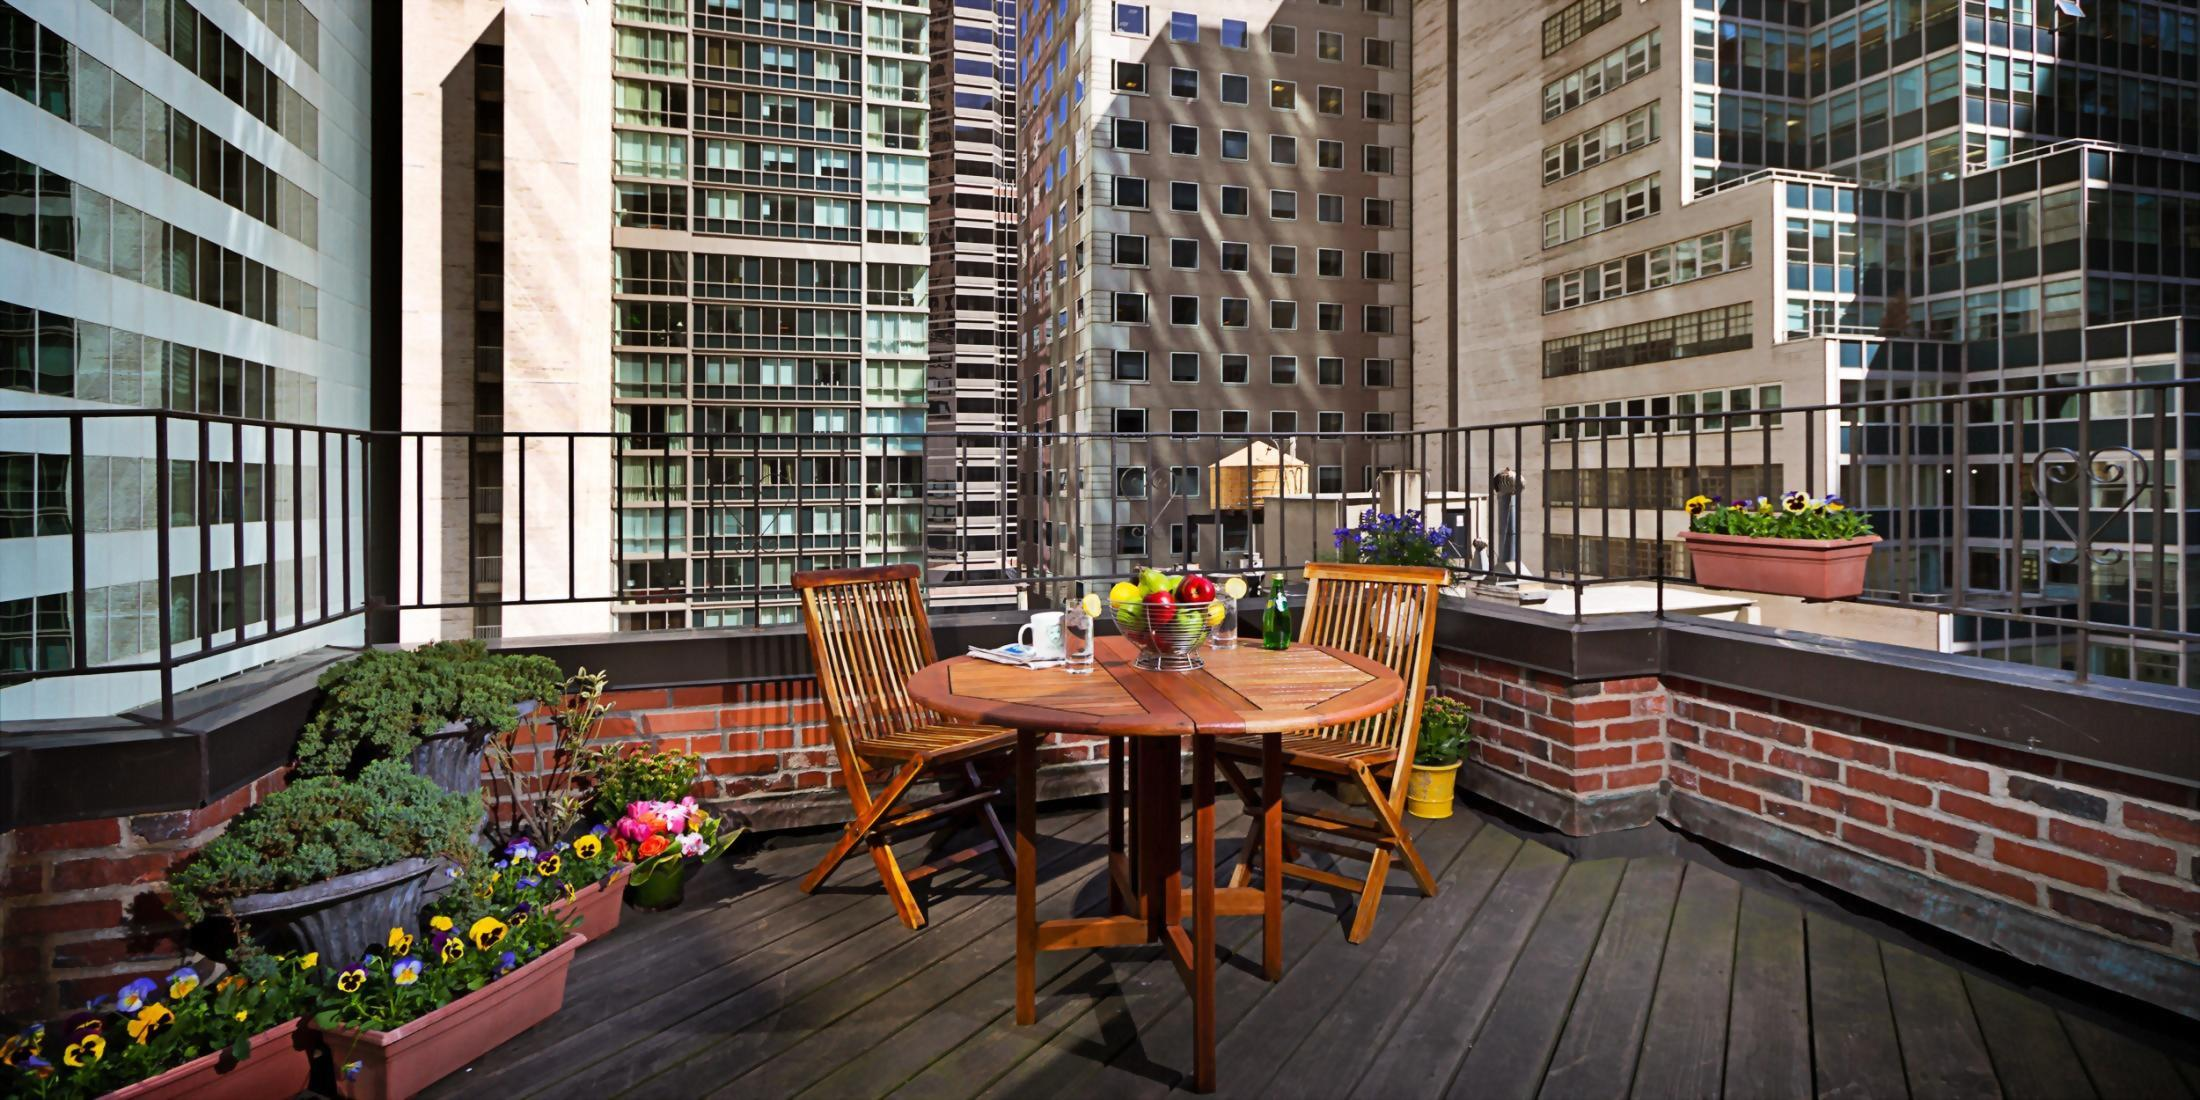 Hotel Elysée has 4 very special rooms with outdoor terraces overlooking 54th Street in Midtown.